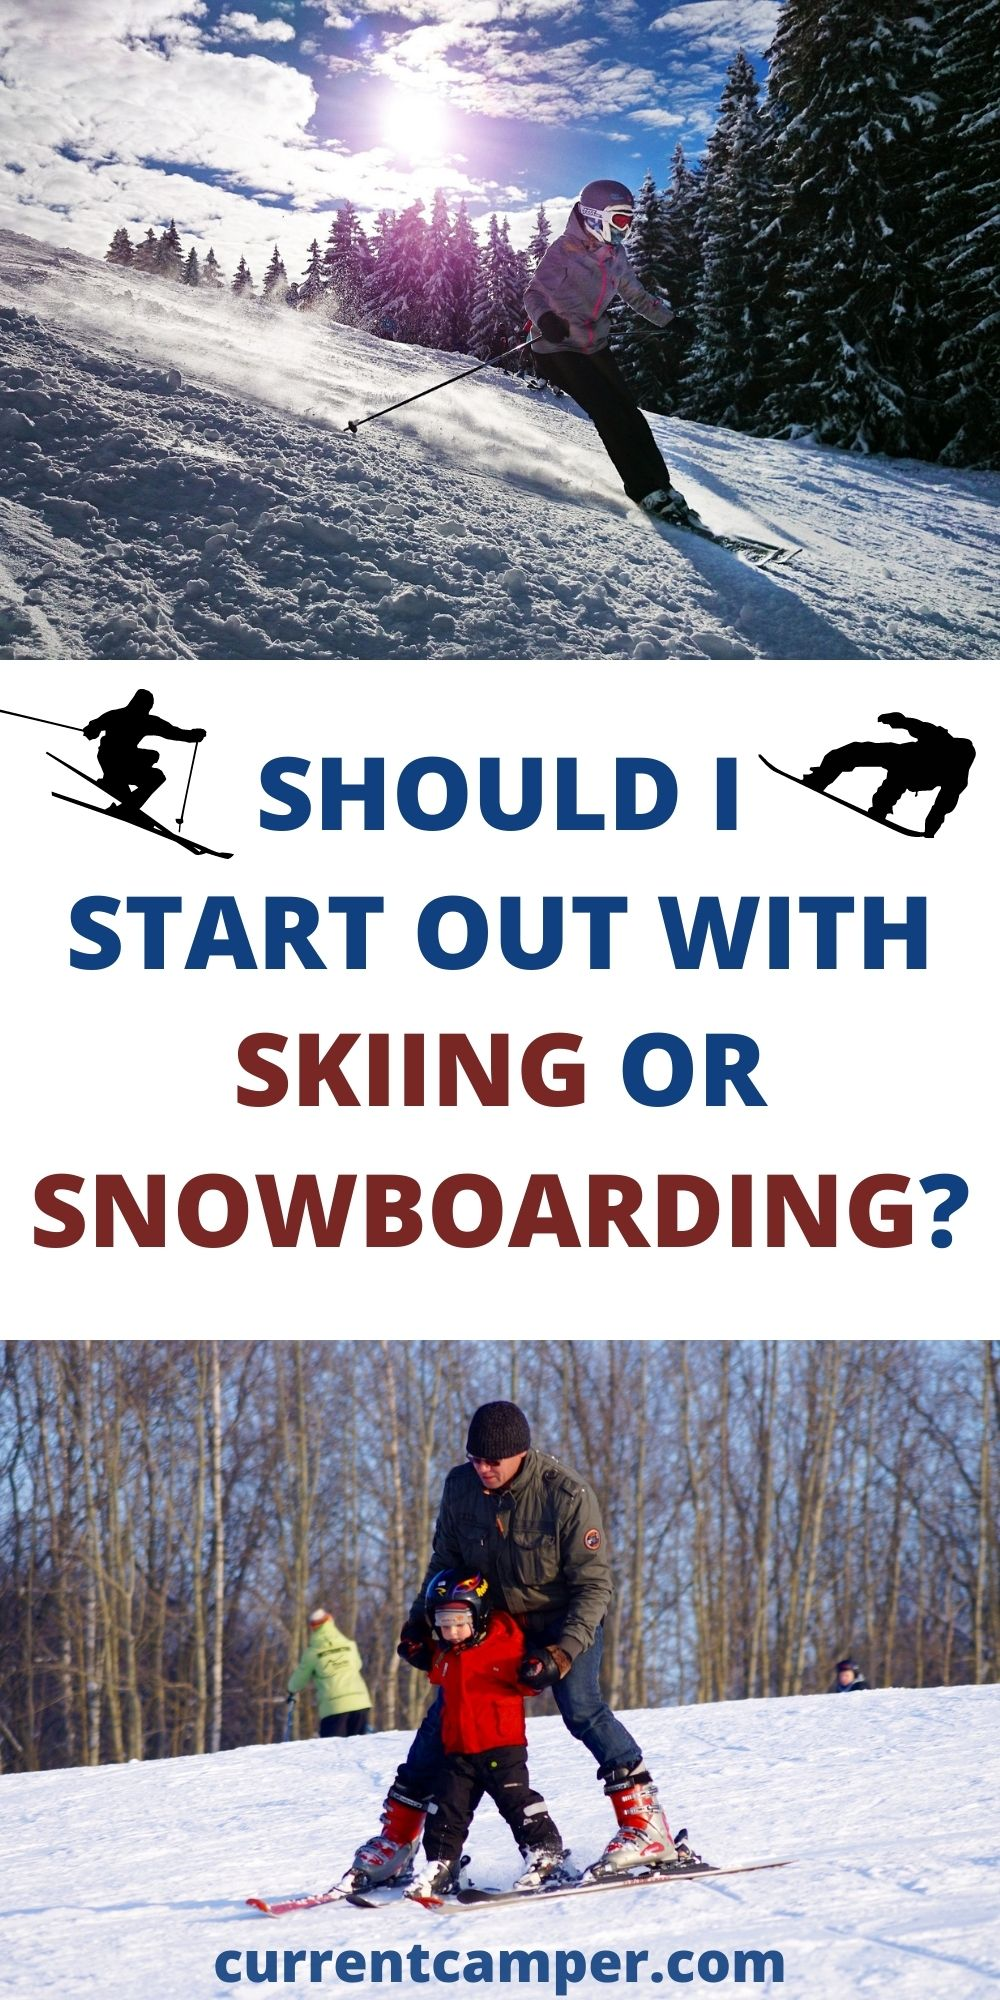 should I start out with skiing or snowboarding?